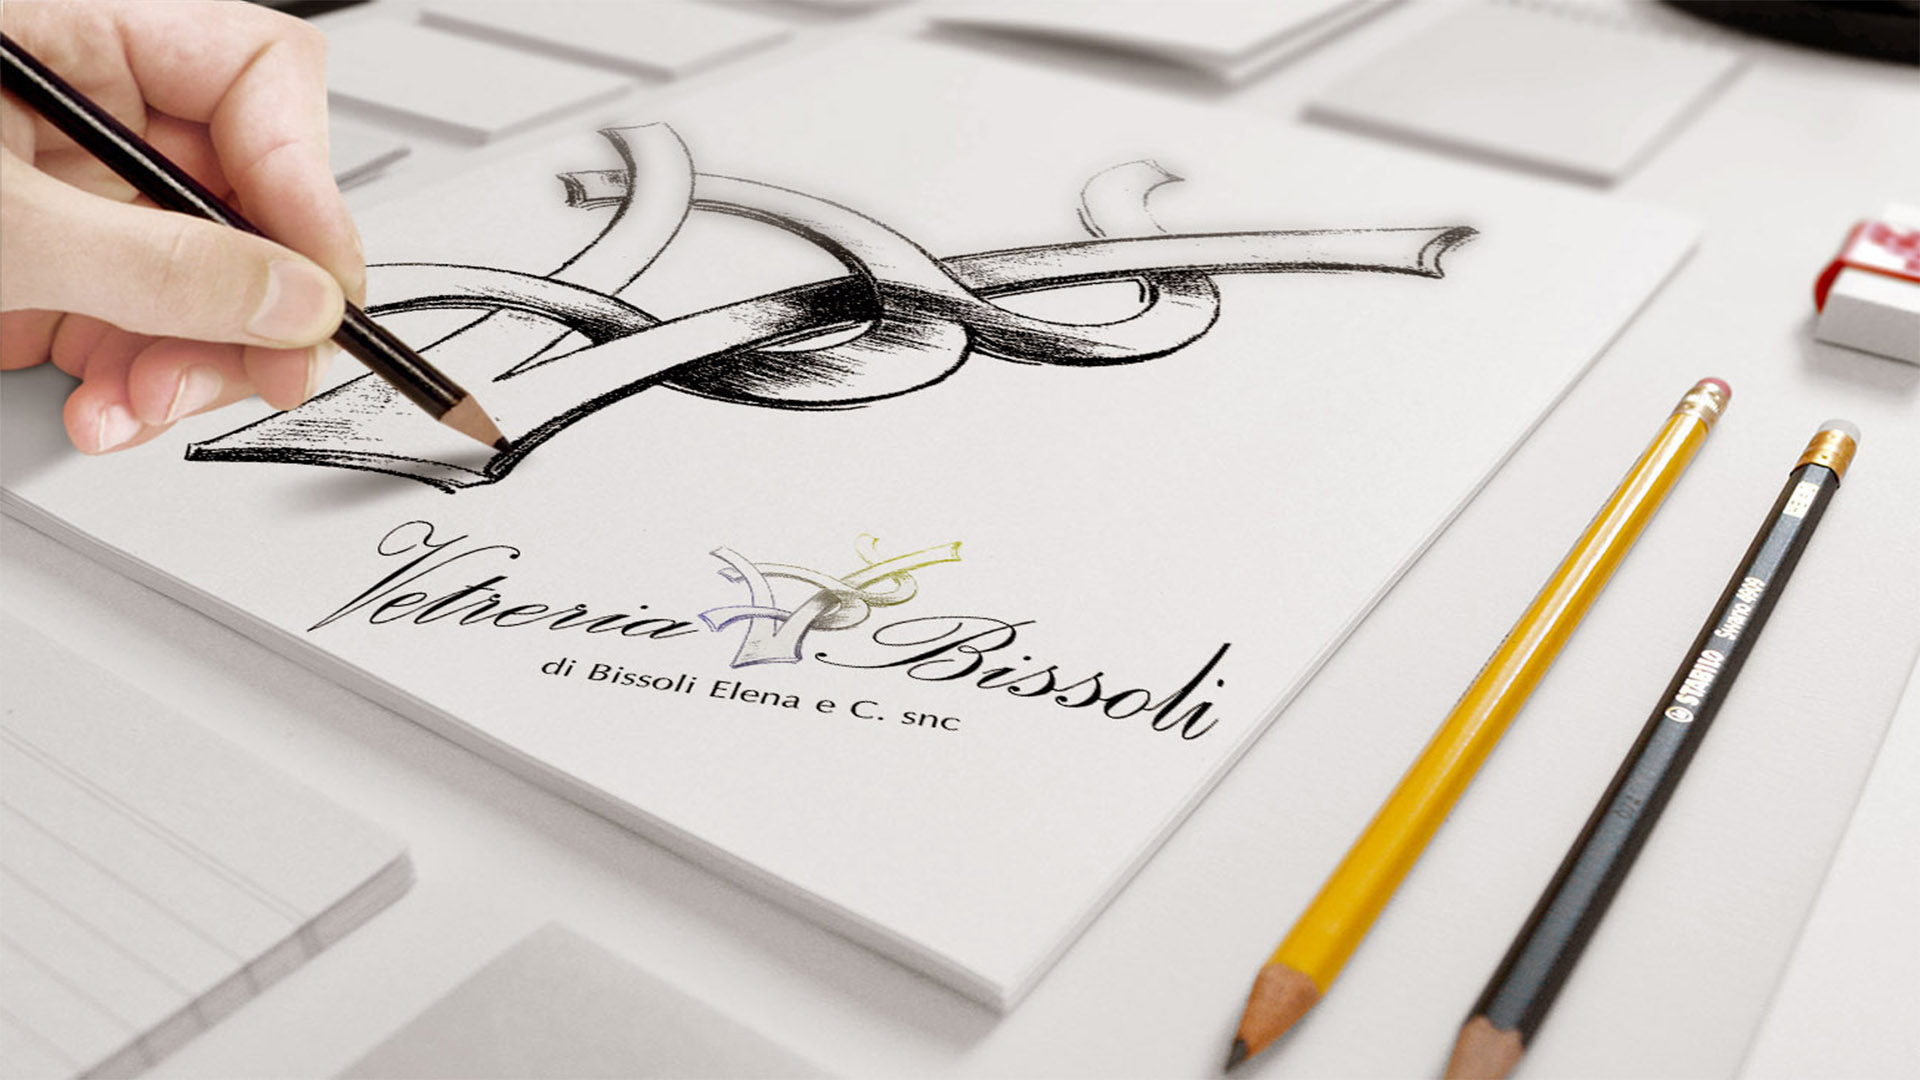 Tescaroli Creative and Logo Vetreria Bissoli